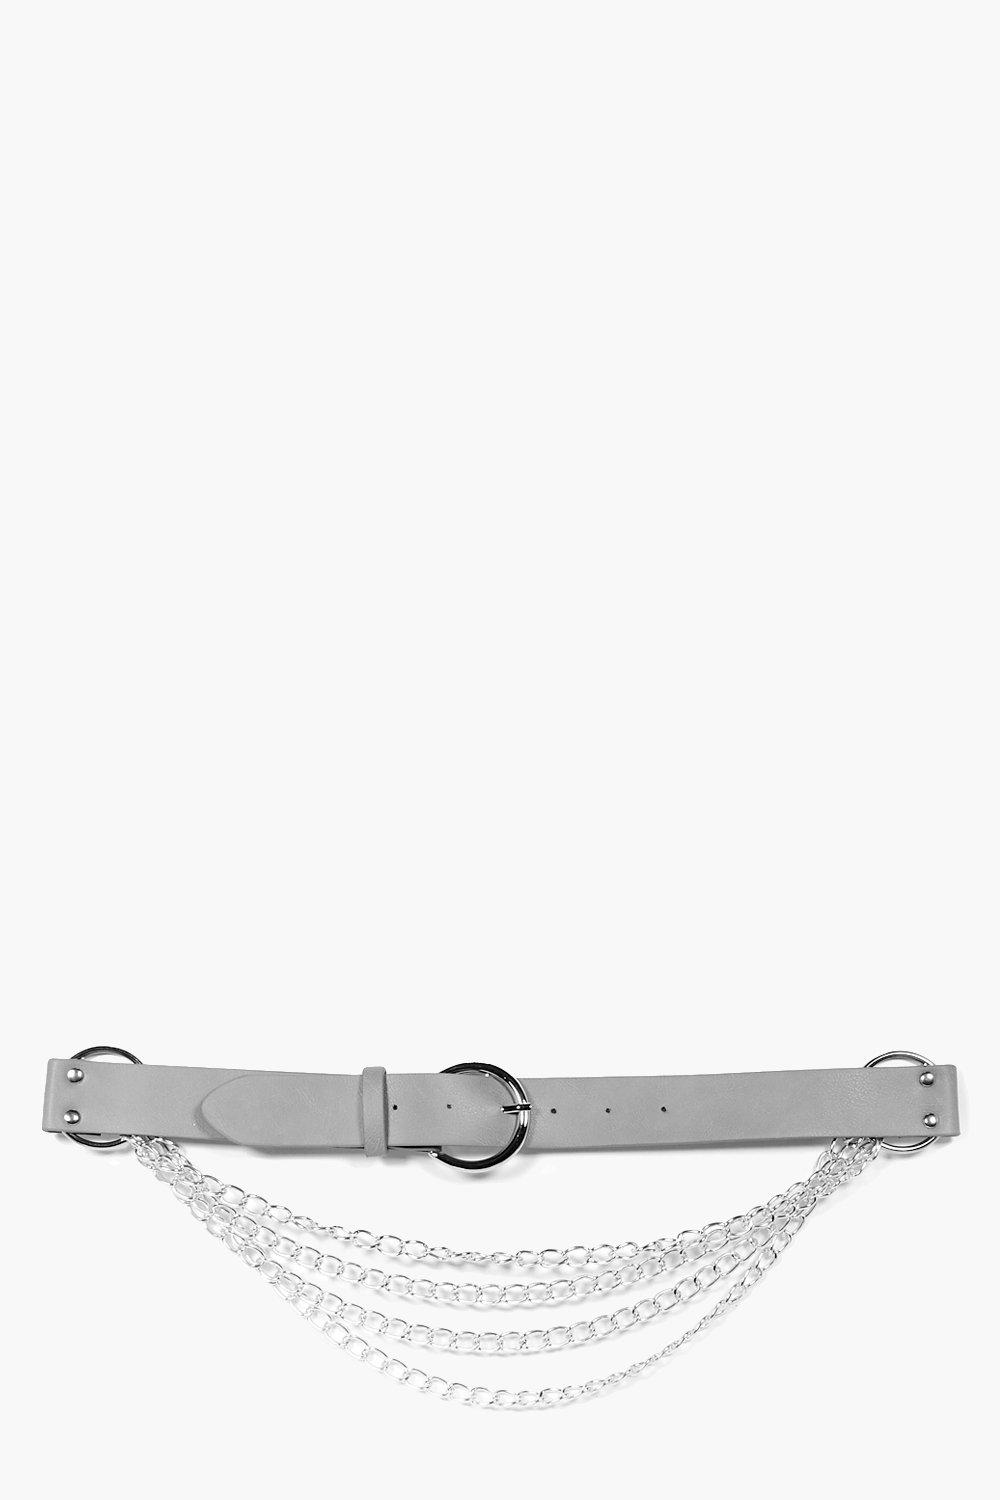 Rings & Chain Boyfriend Belt - grey - Molly Rings